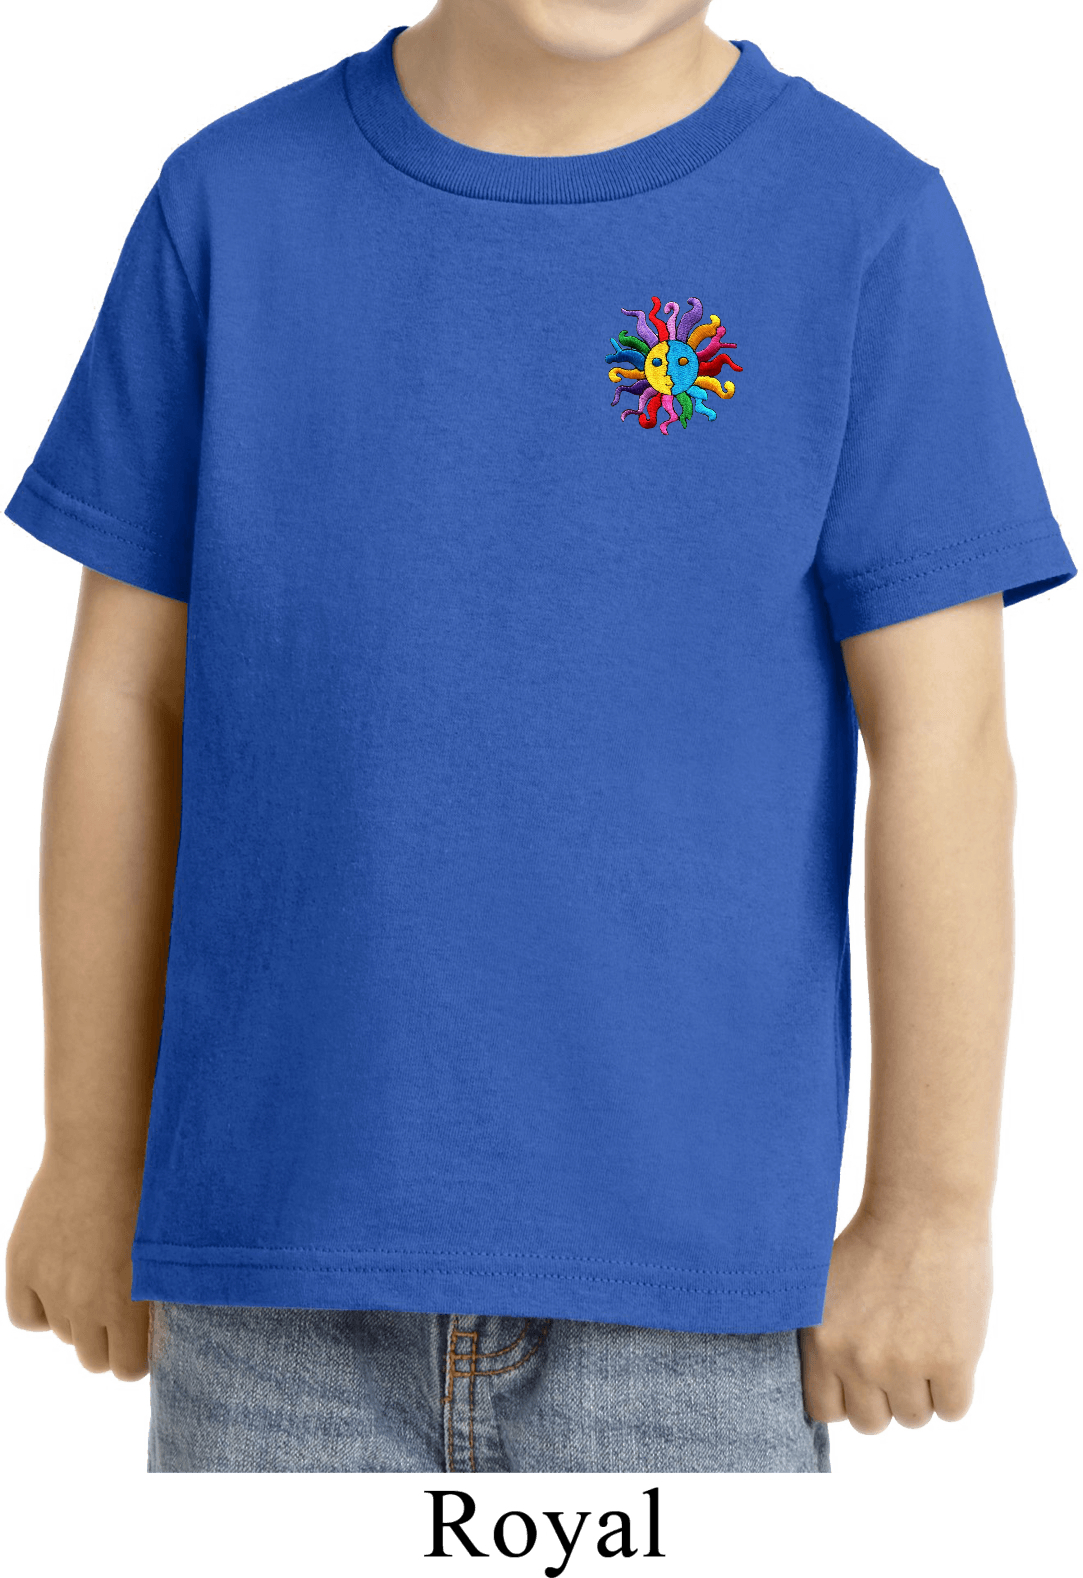 Kids Yoga Shirt Hippie Sun Patch Pocket Print Toddler Tee